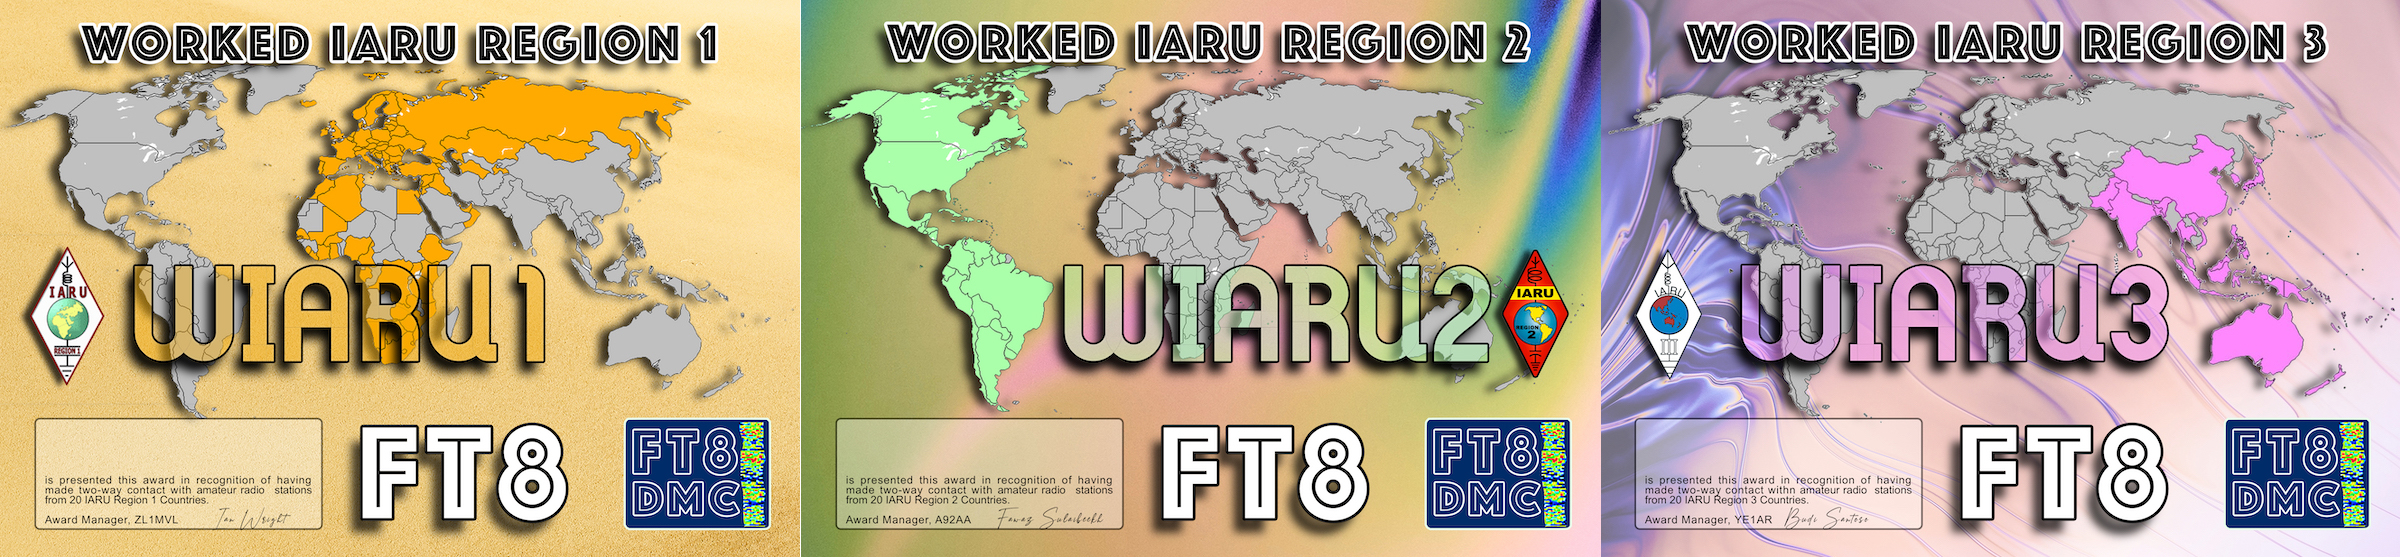 FT8 Digital Mode FT4 - Modo Digitale HF - JTDX - WSJT-X